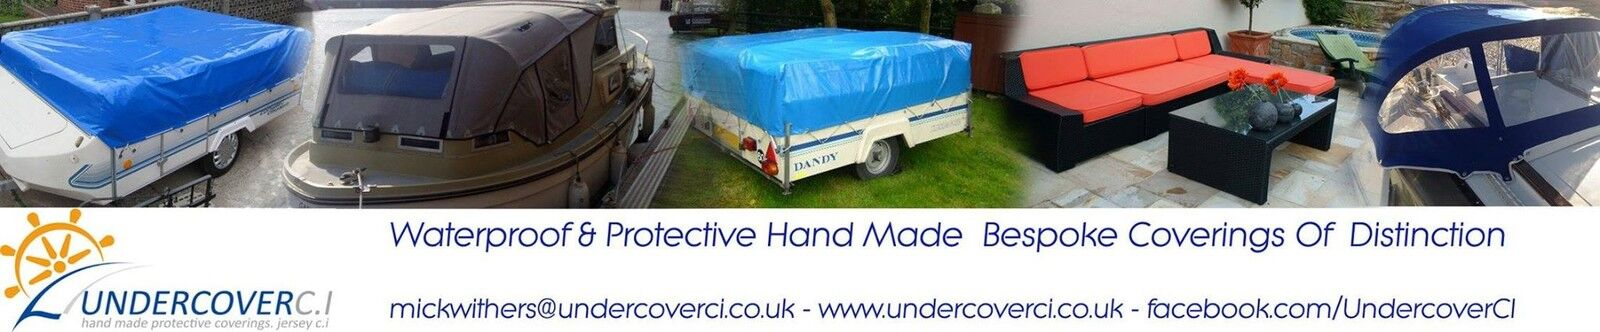 UnderCover C.I Protective Coverings